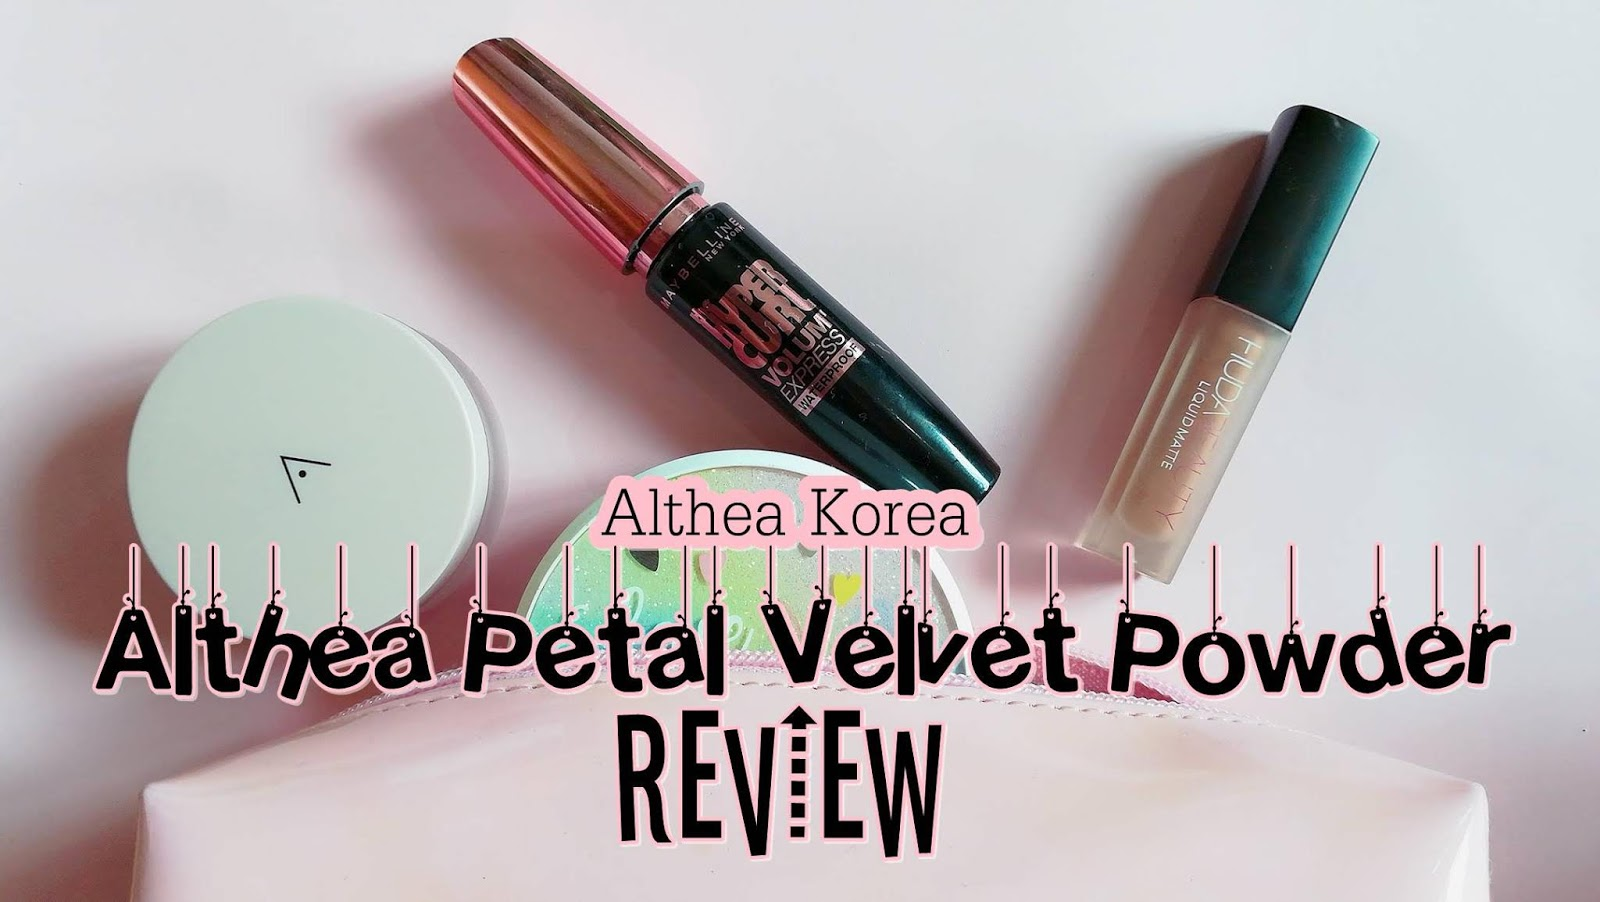 [Althea Angels] : Althea Petal Velvet Powder Review